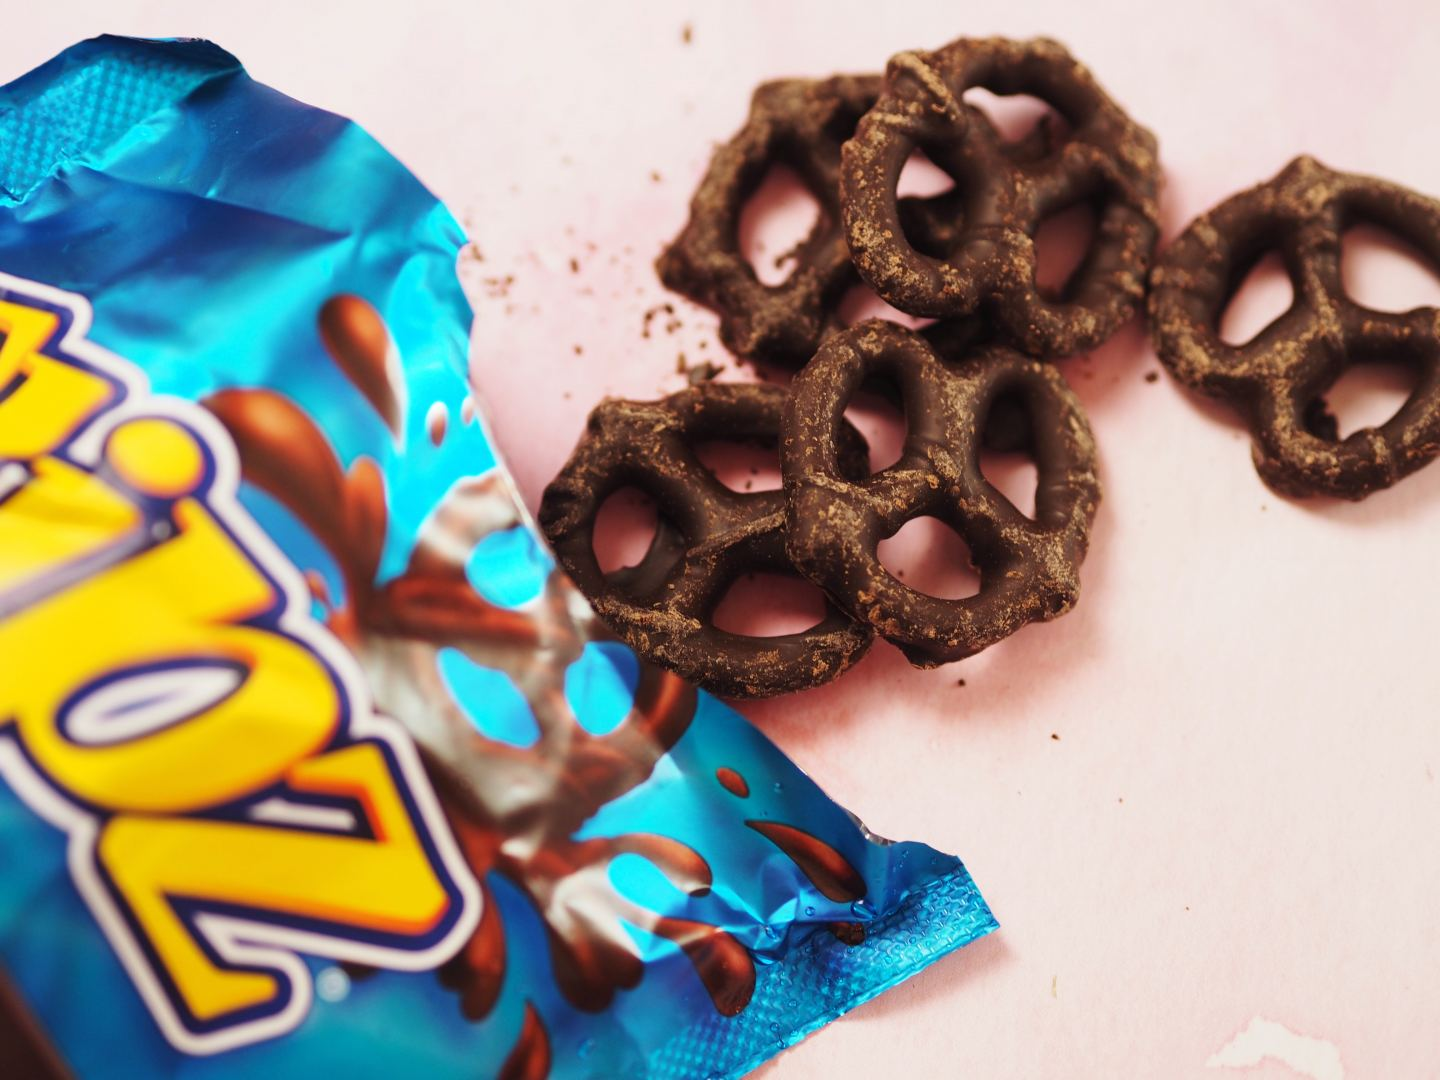 flipz chocolate cover pretzels